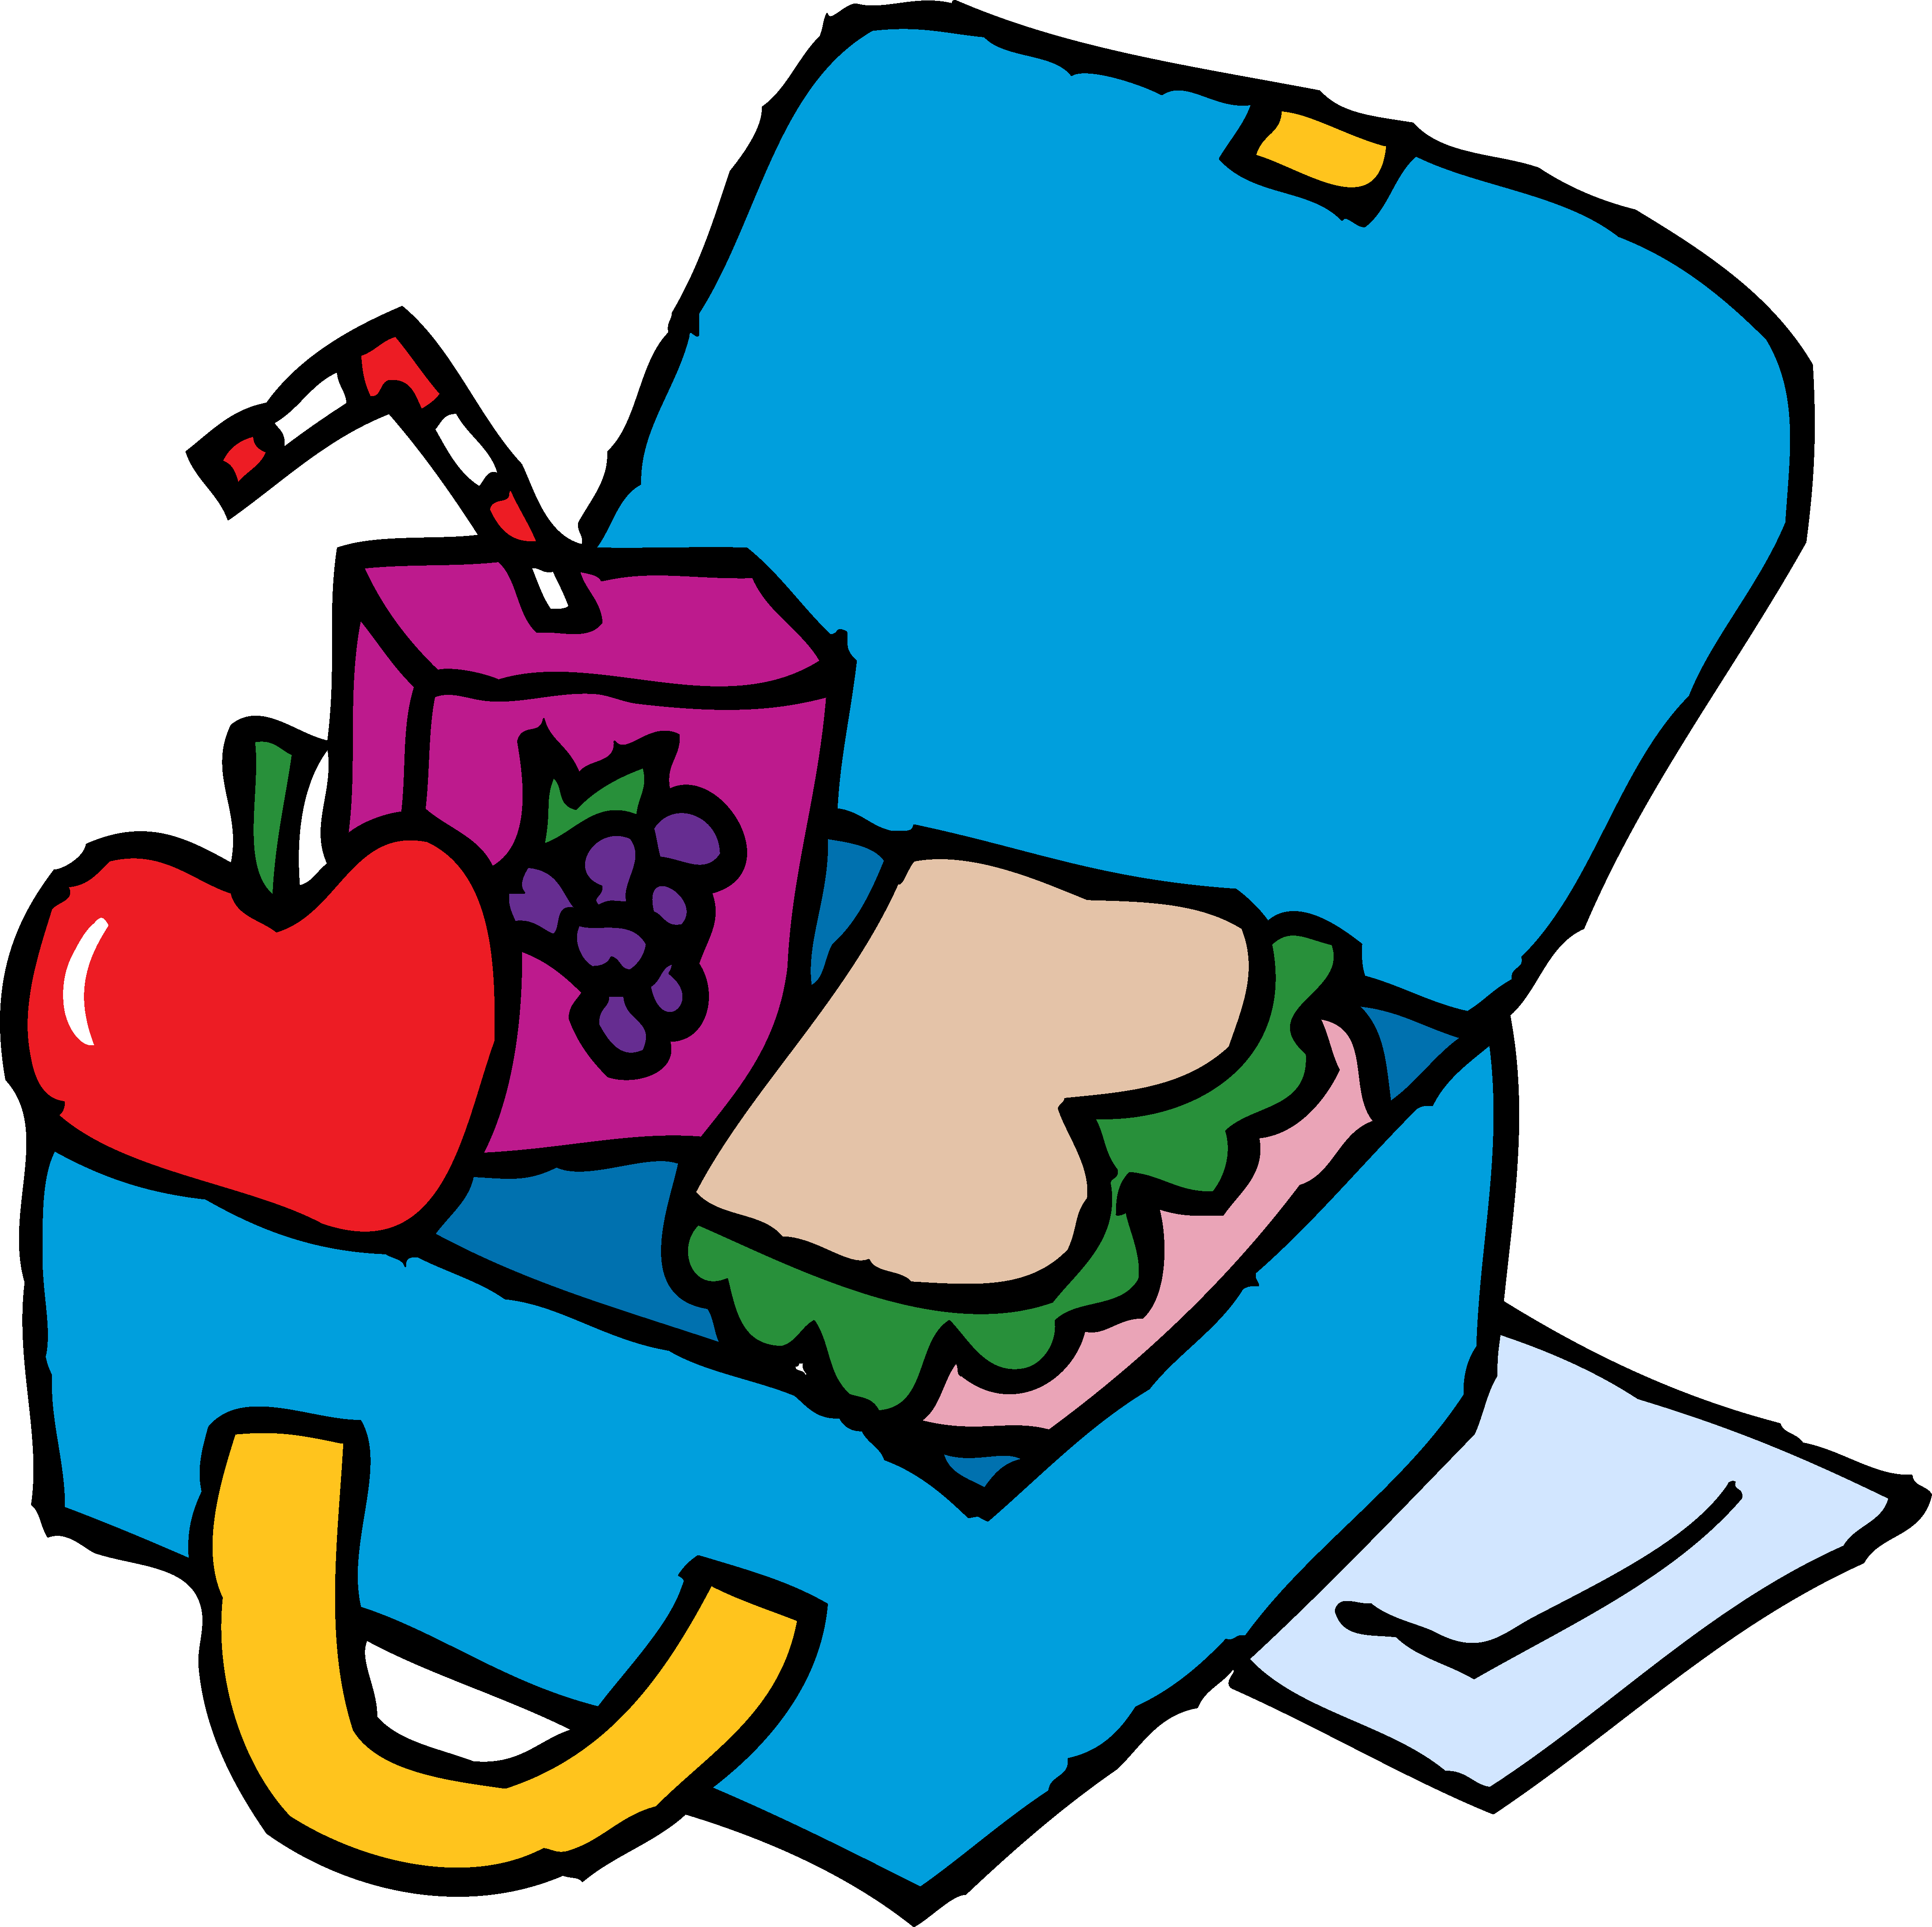 Lunchbox coloring book drawing. Clipart lunch packed lunch